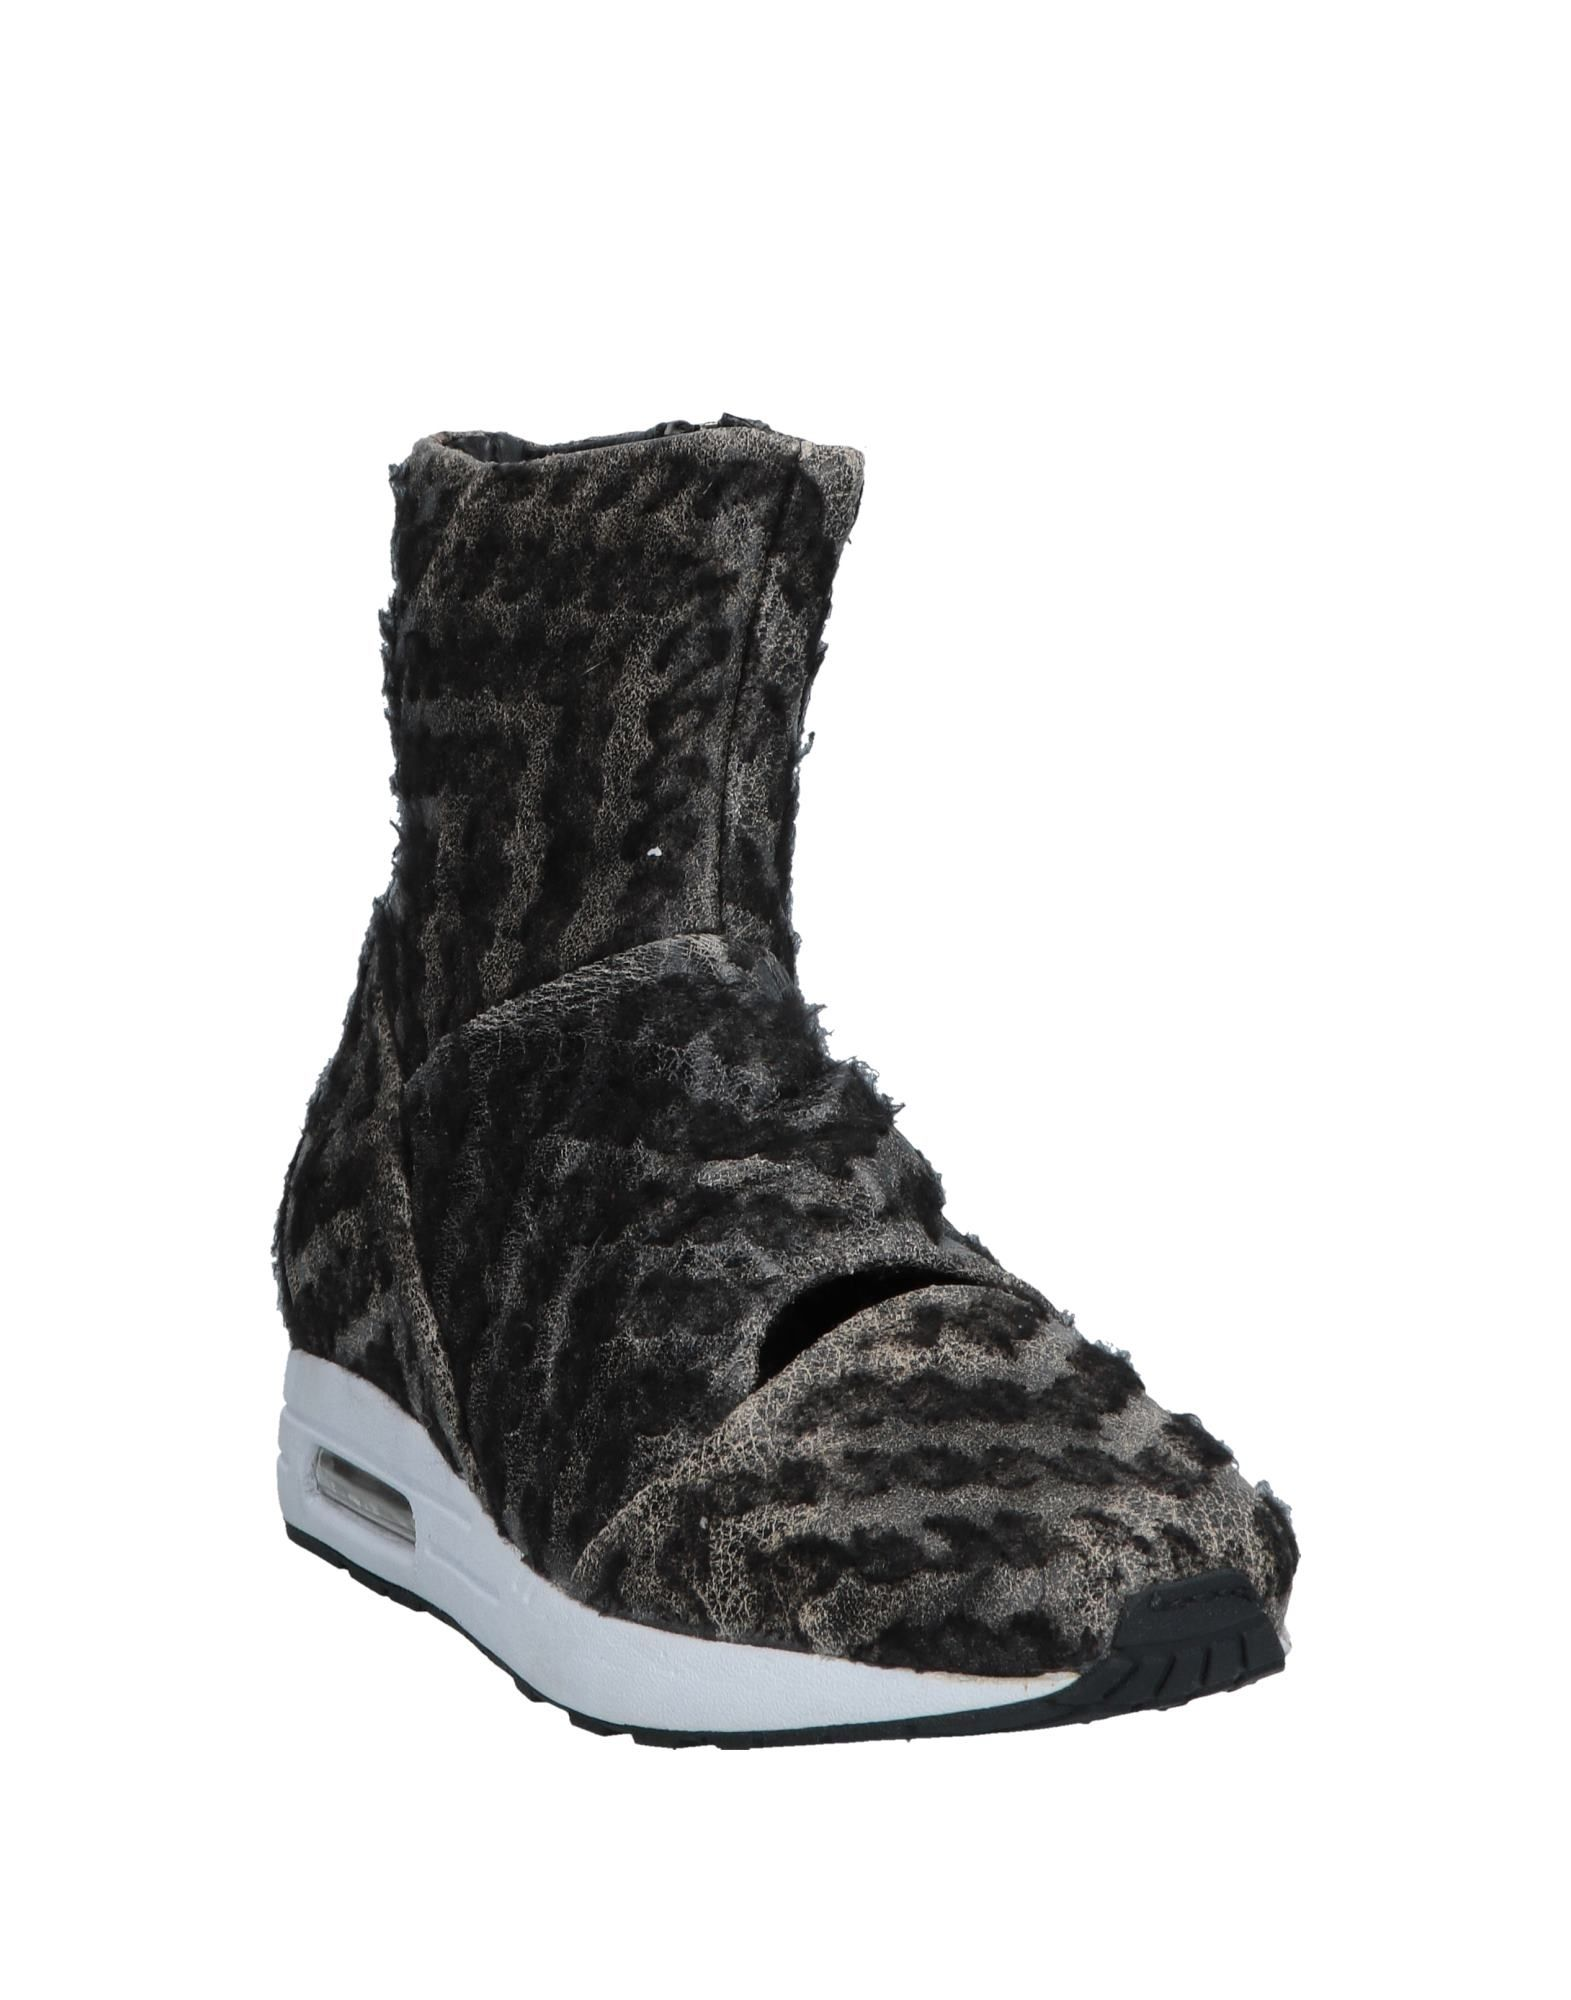 Susana Traca Ankle Boot - Women Susana Traca Ankle Ankle Ankle Boots online on  United Kingdom - 11555111VN 280fc6